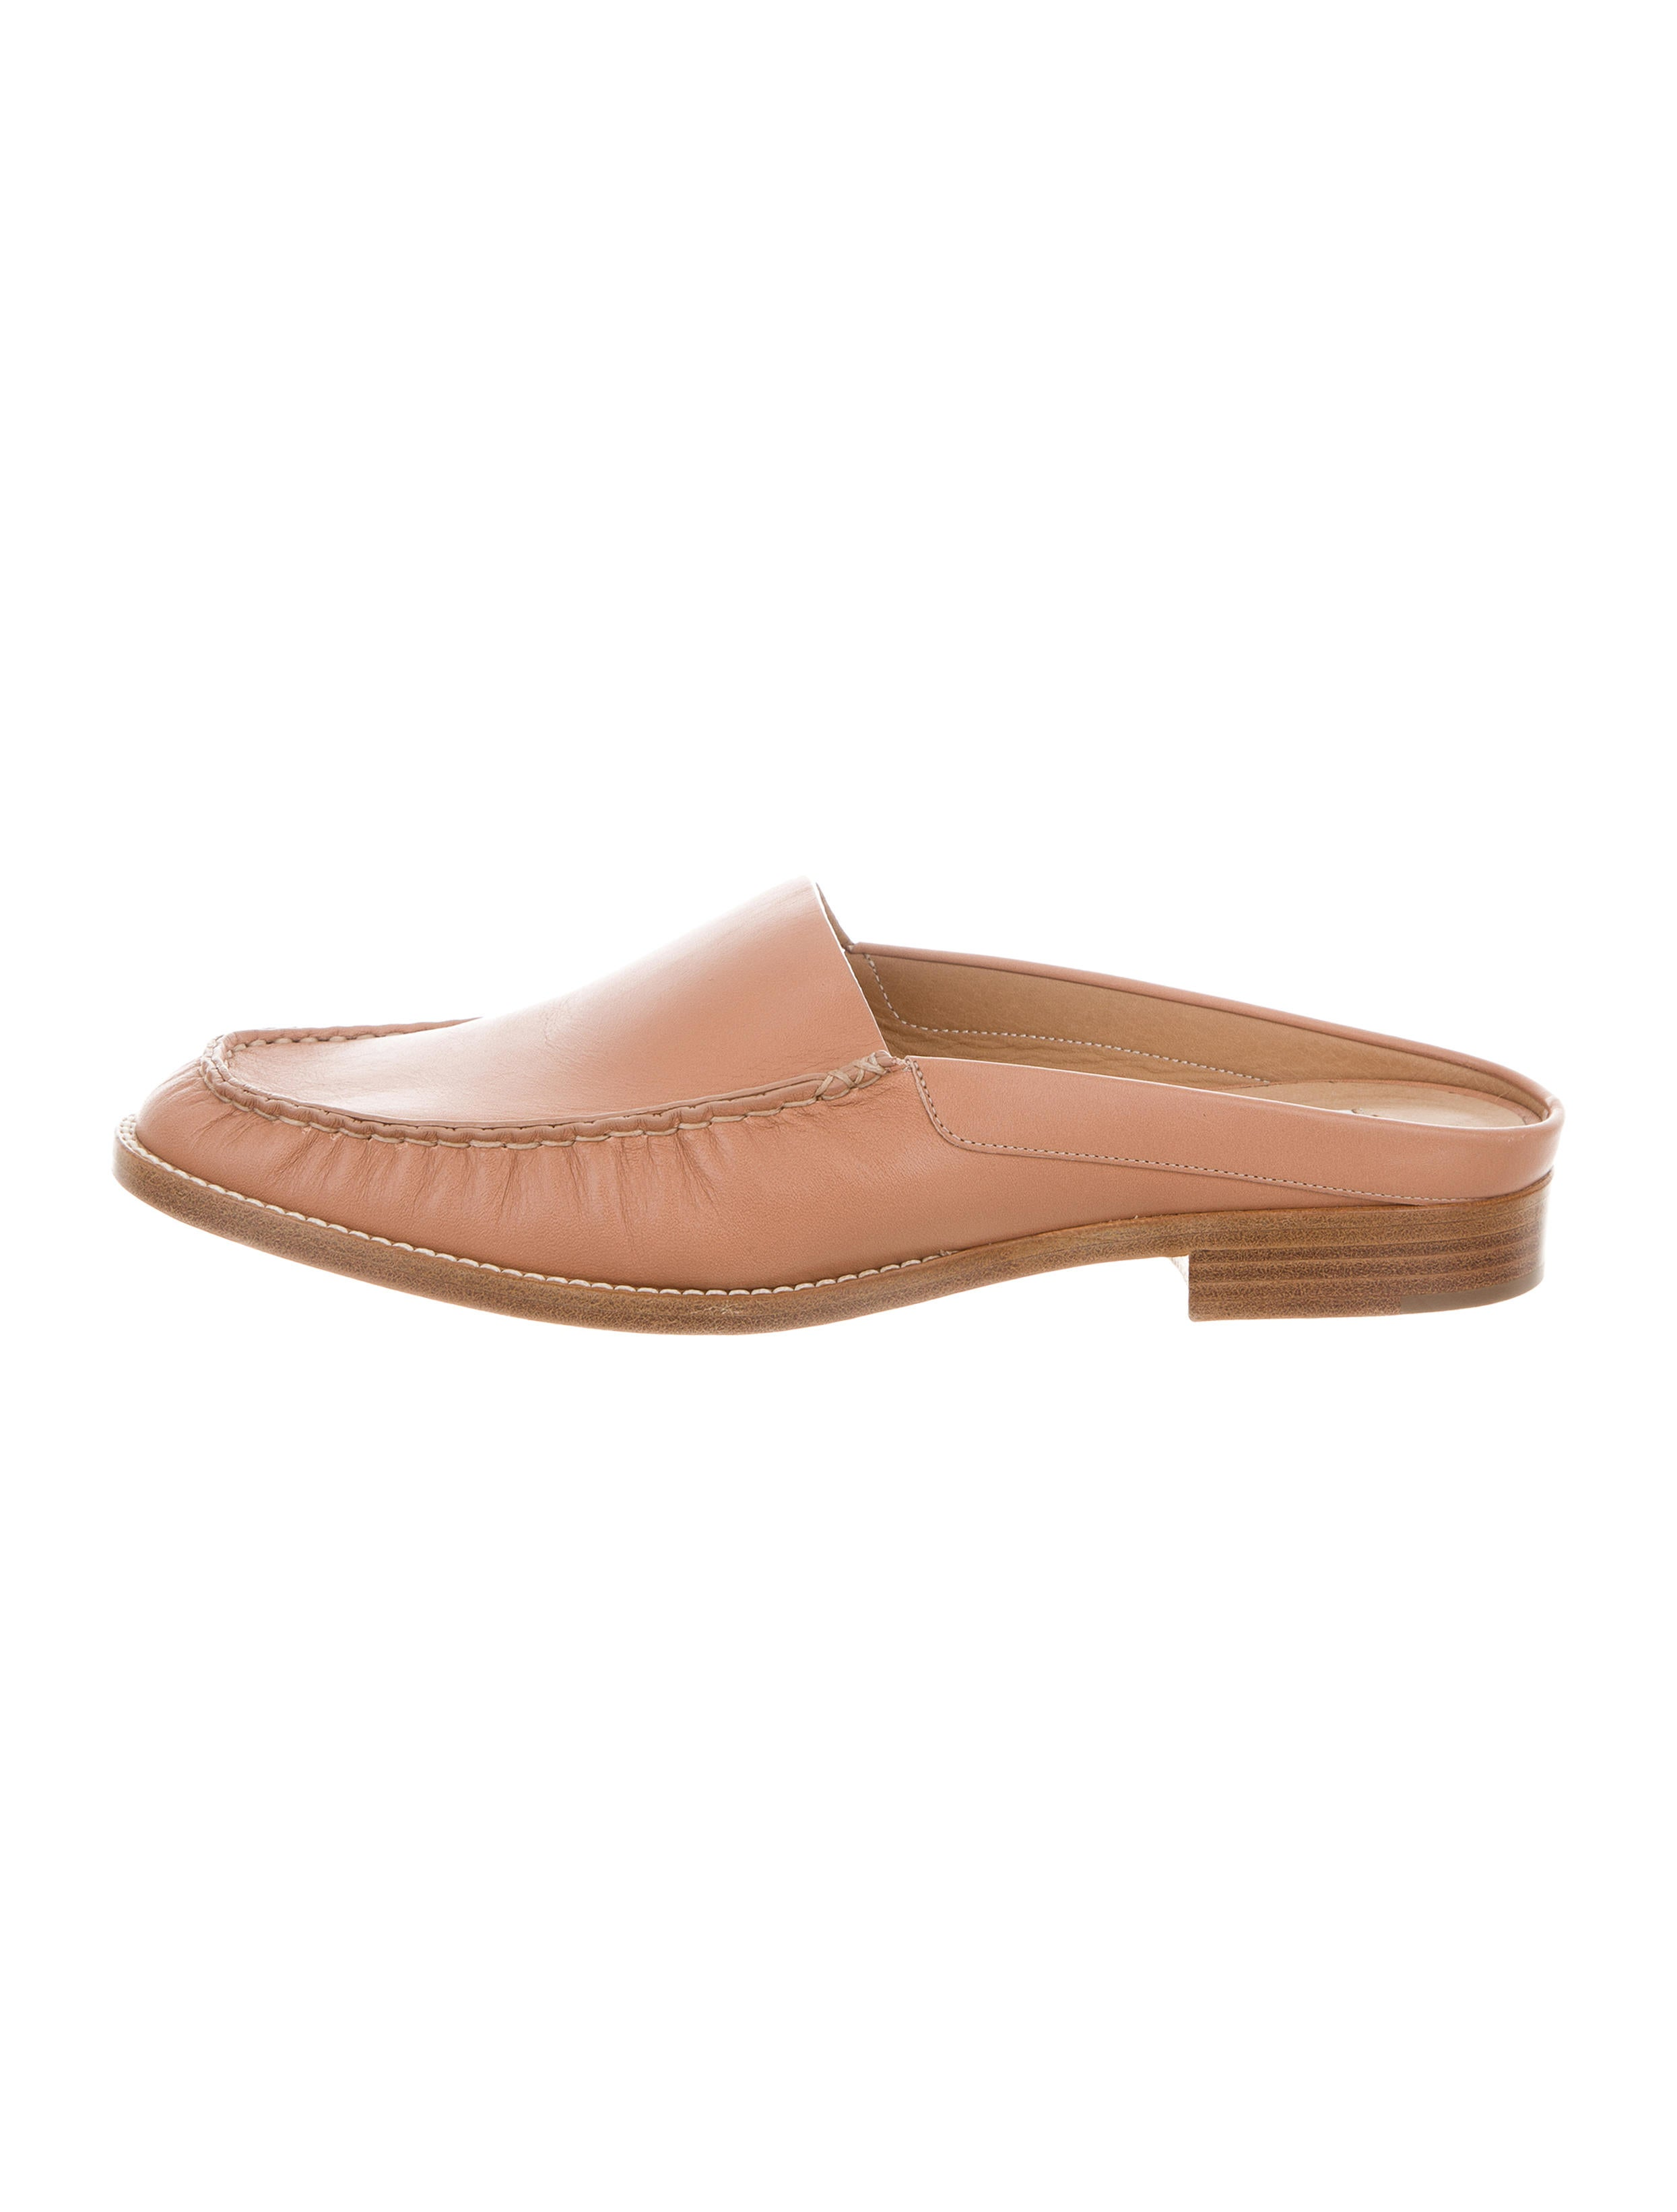 Gabriela Hearst Leather Round-Toe Mules 100% guaranteed online where can i order EOaJhks1